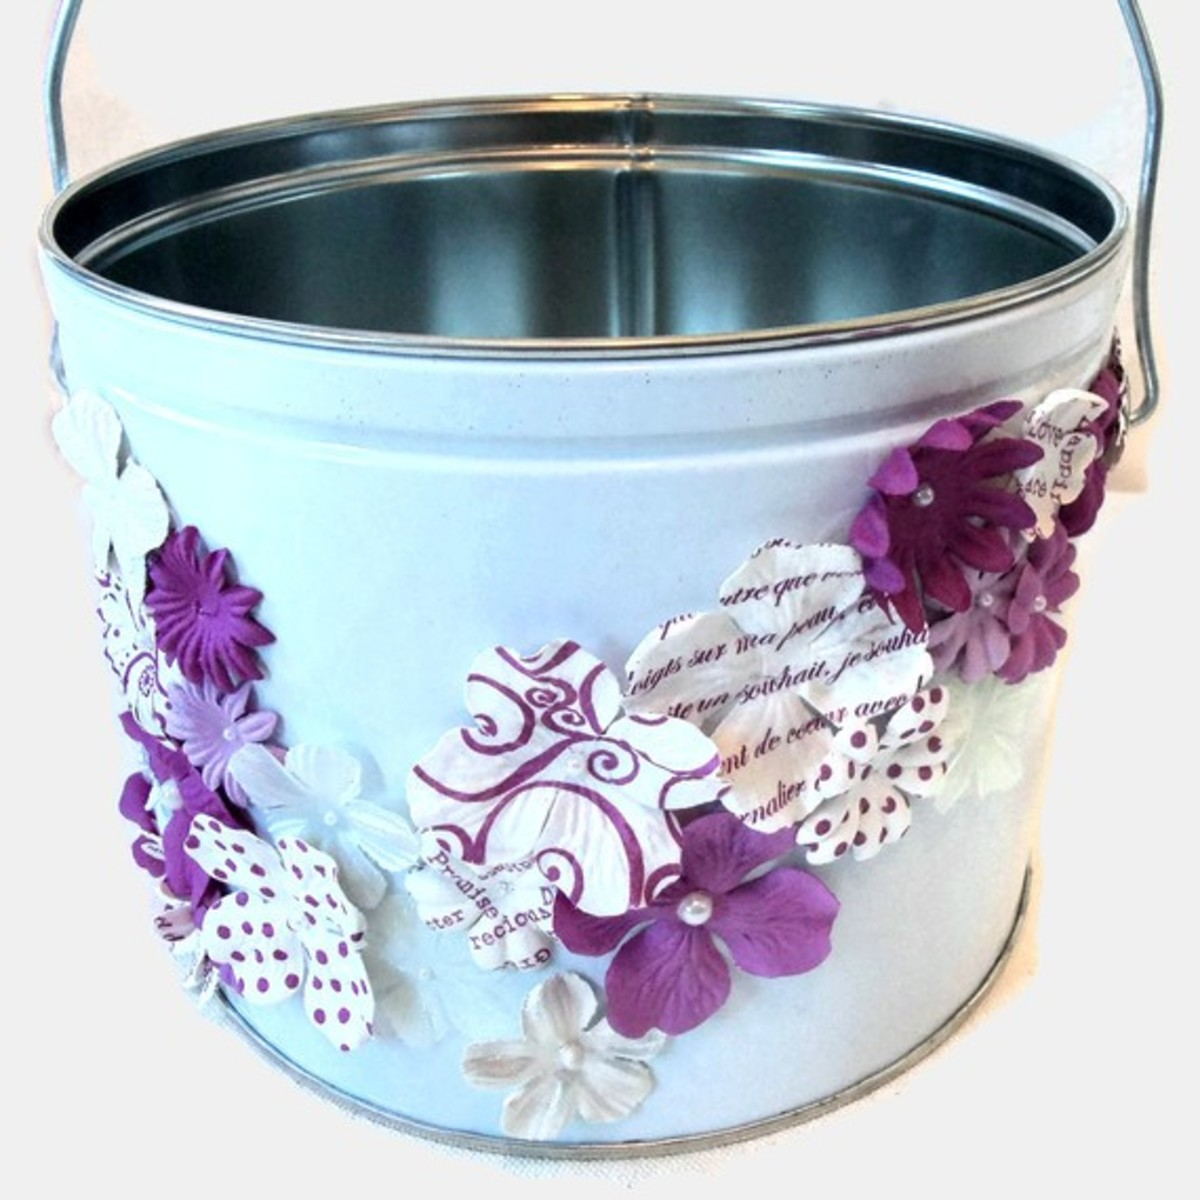 Down-home flower girl bucket...would look great for a barn-themed wedding